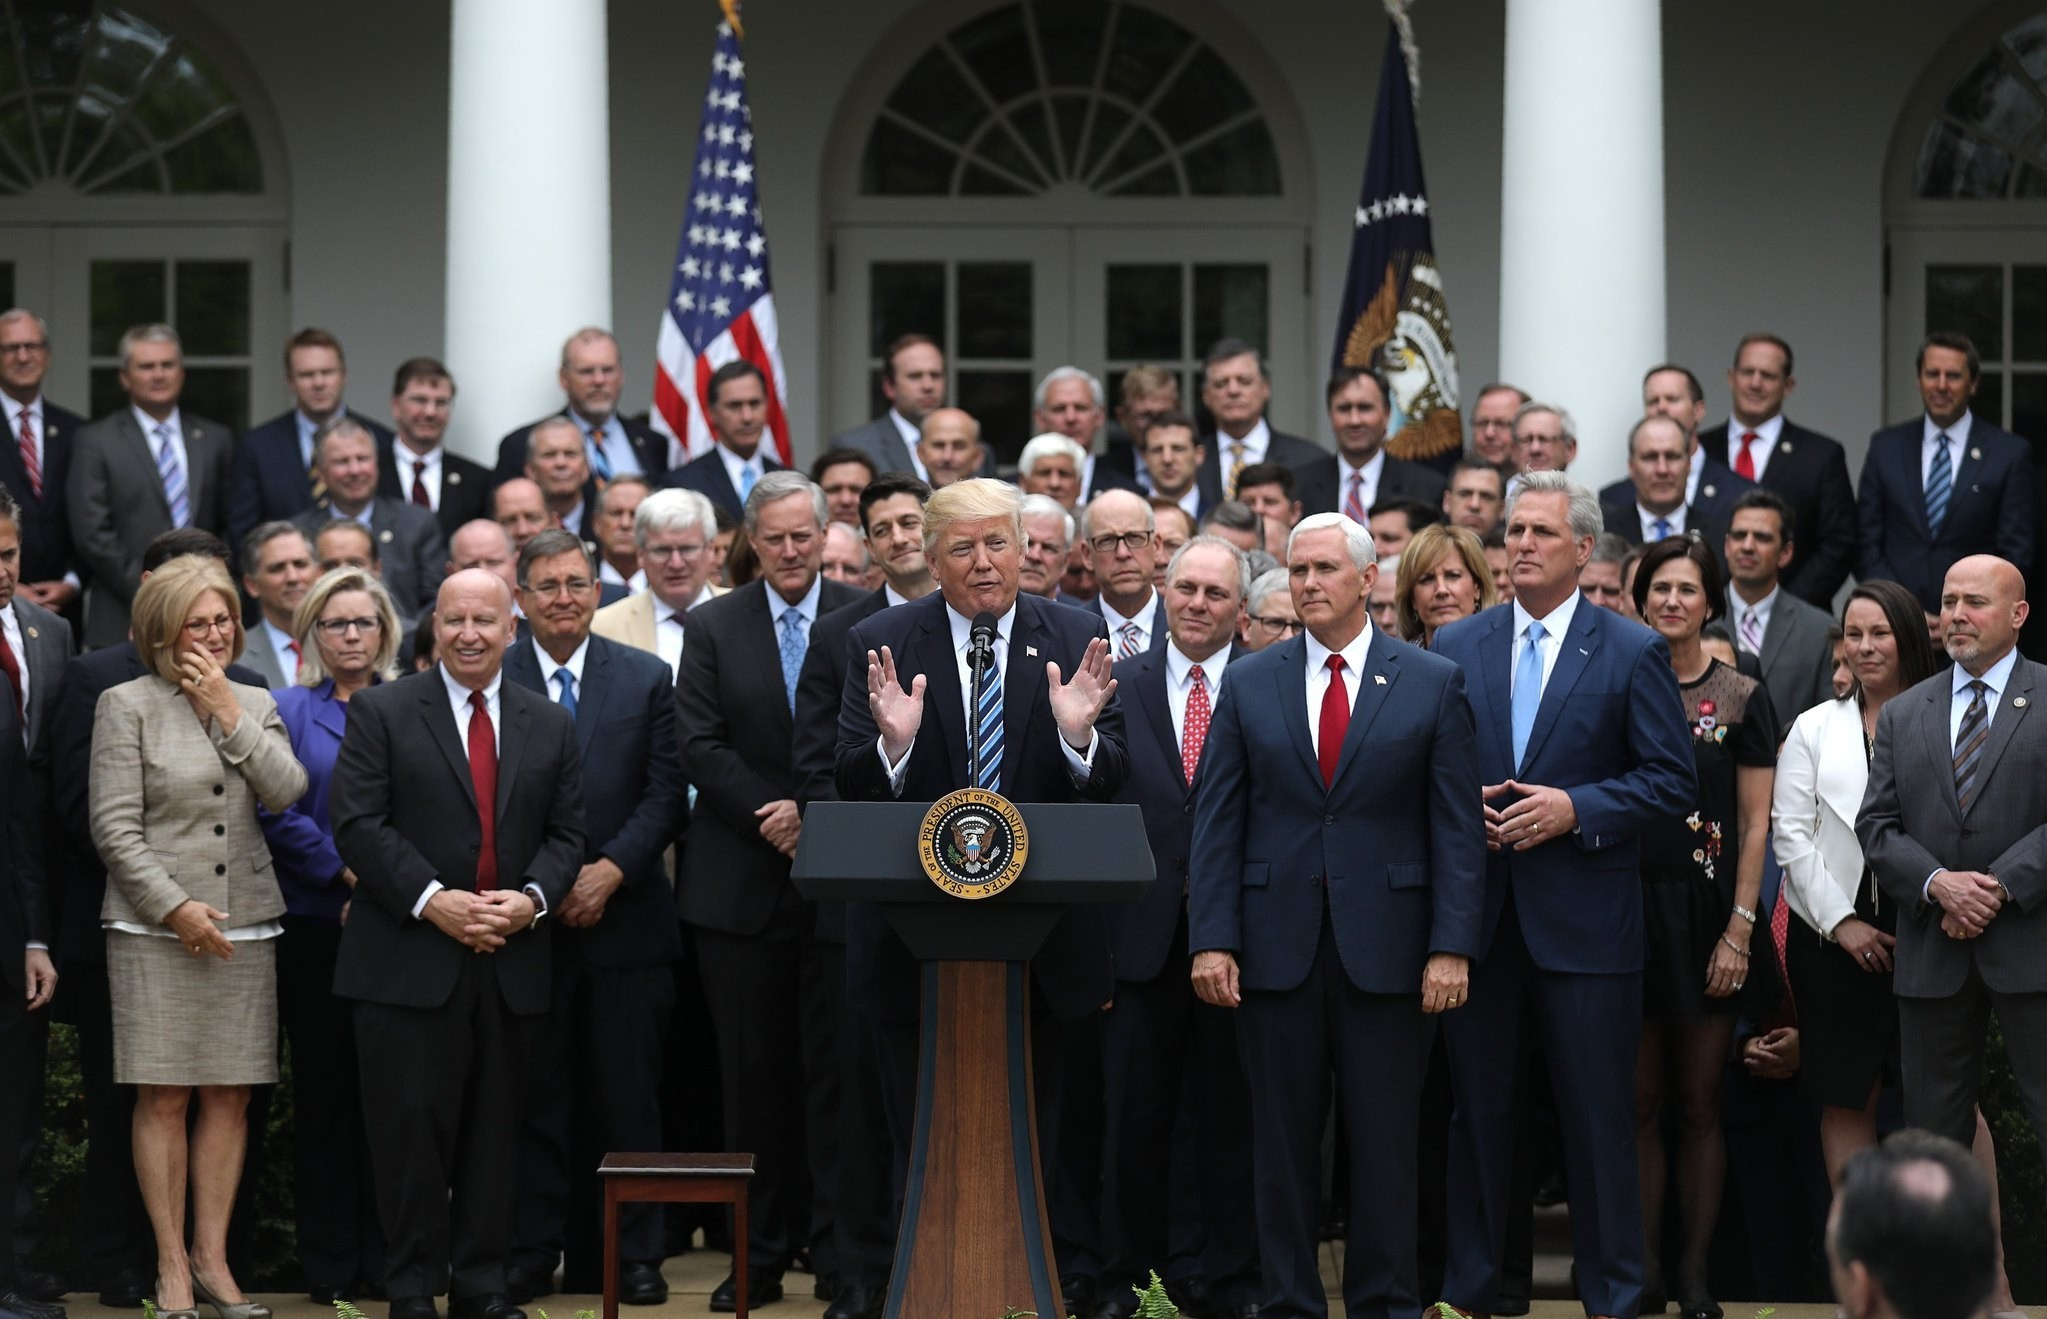 Donald Trump gathering with Congressional Republicans in Rose Garden of White House after House of Representatives approved American Healthcare Act,to repeal major parts of Obamacare and replace it with Republican healthcare plan, Washington, May 4.